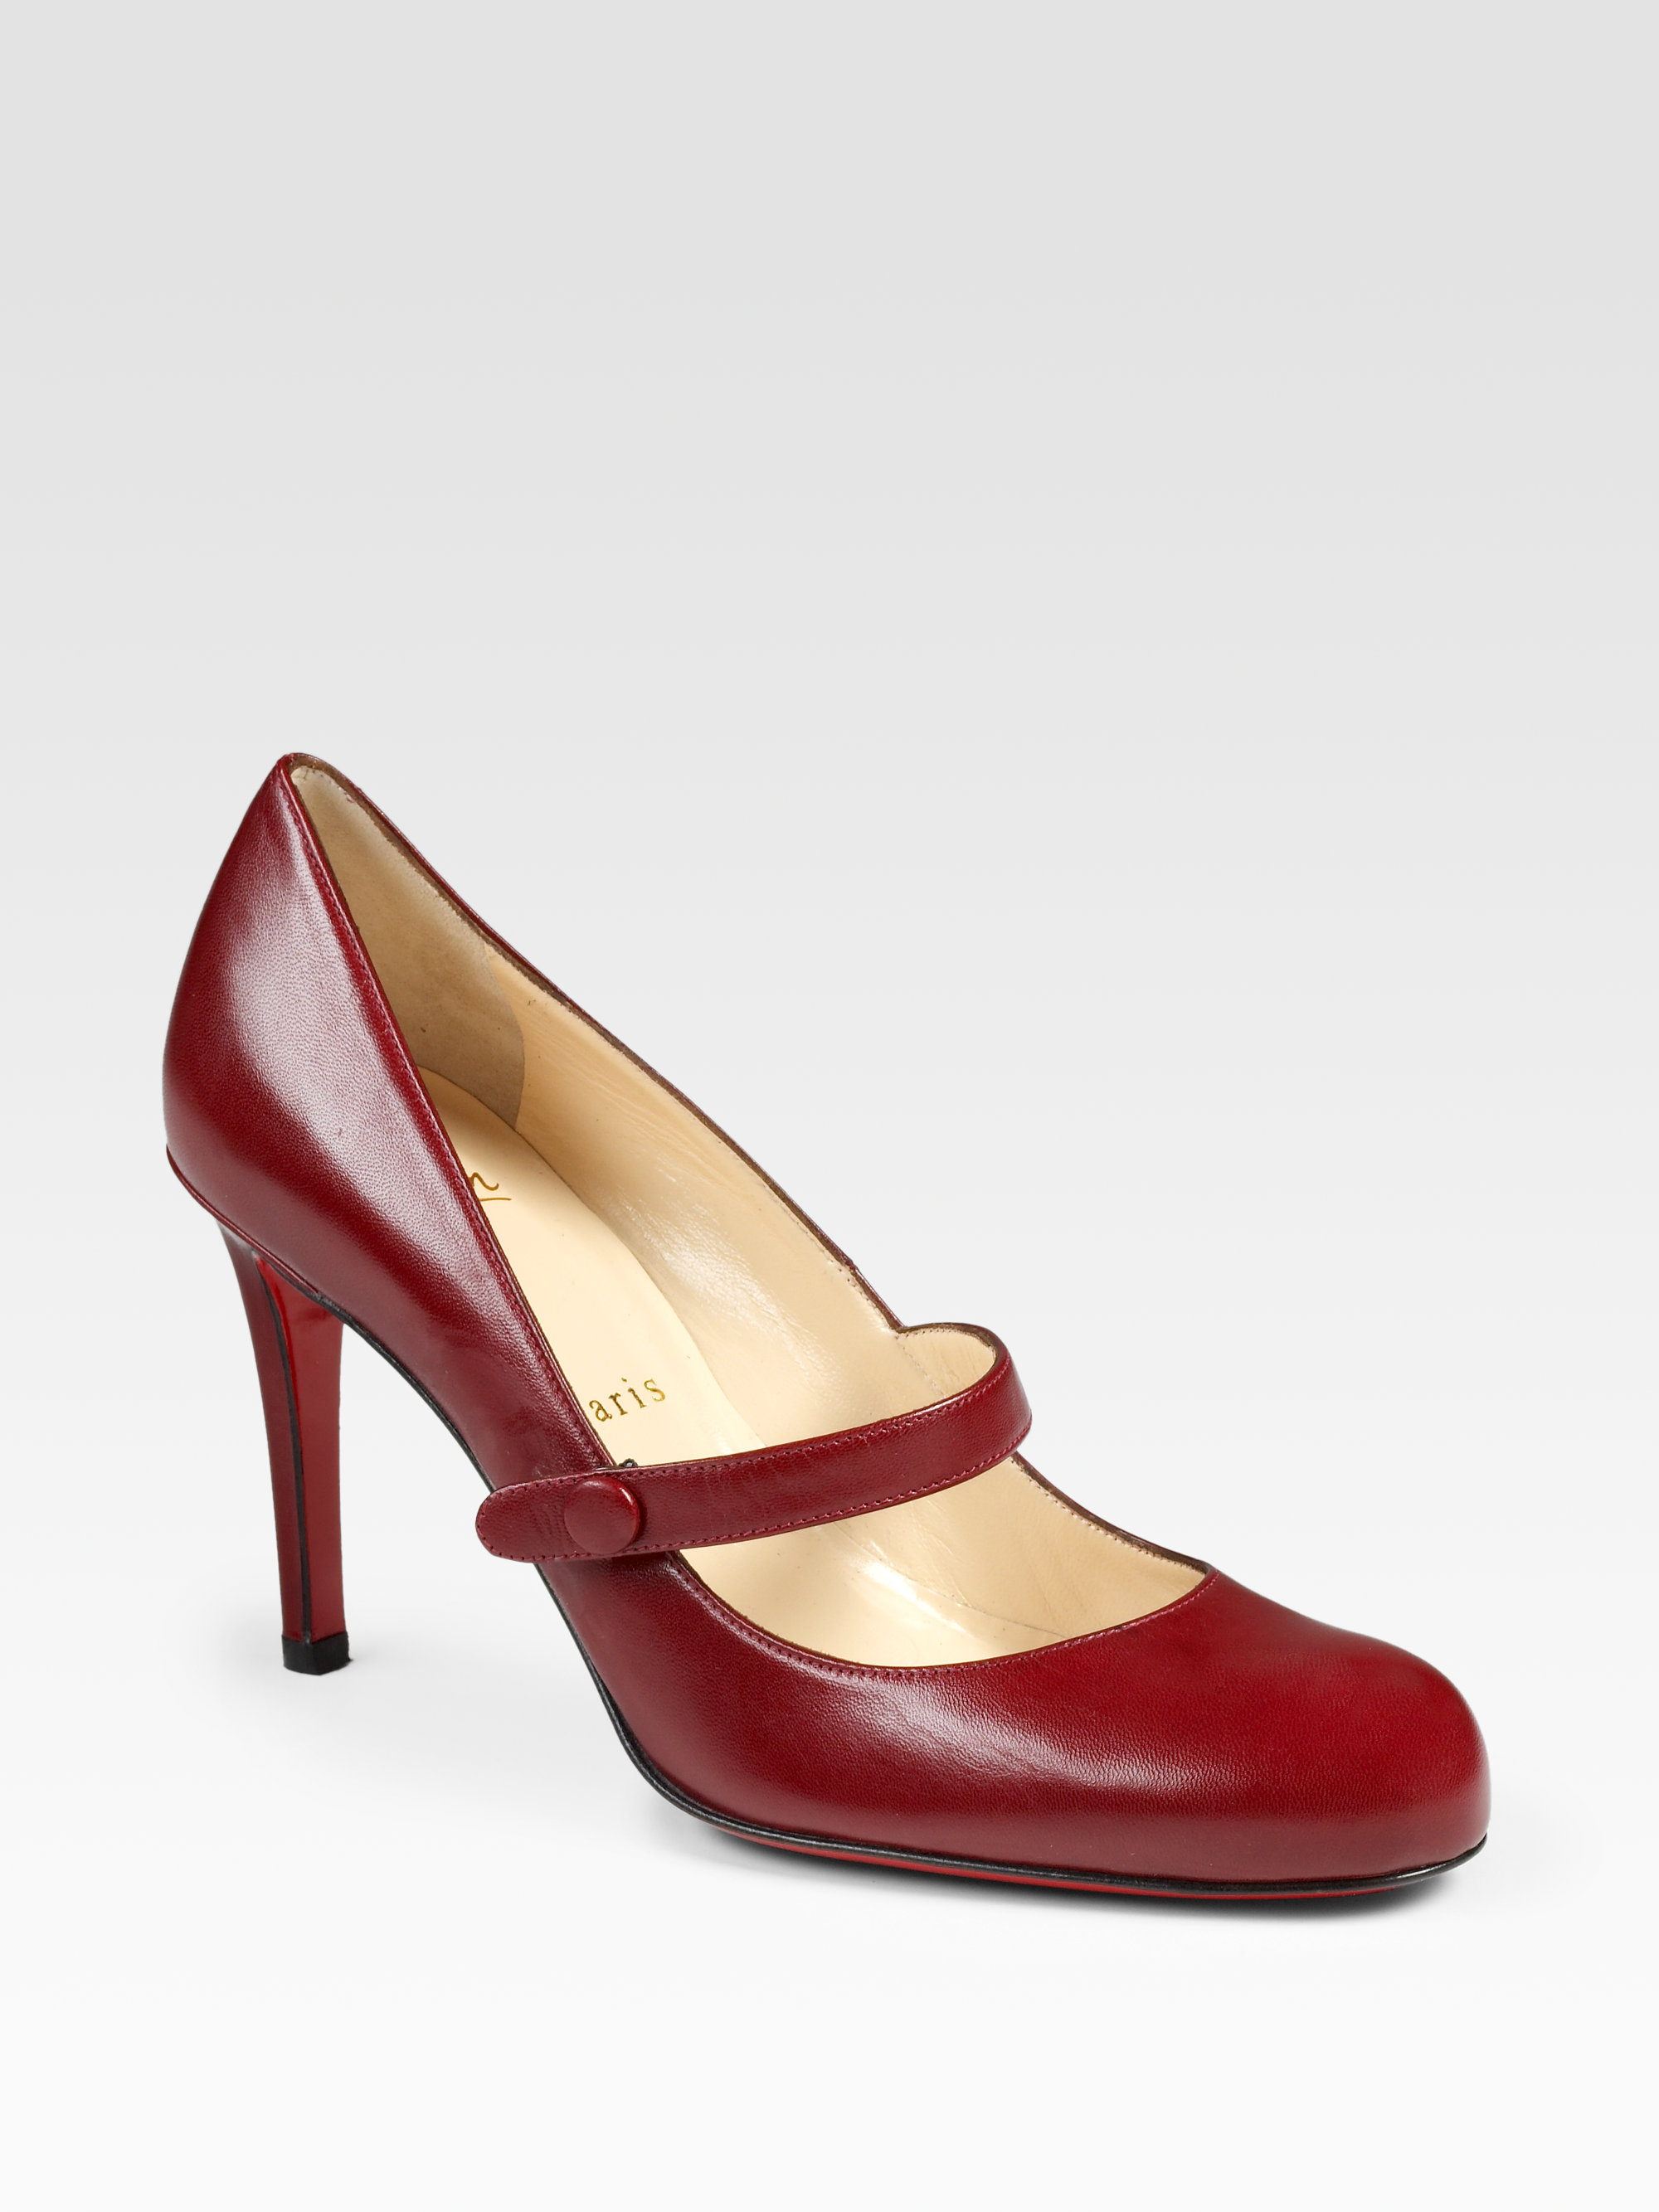 2c9564703cd3 Lyst - Christian Louboutin Wallis Mary Jane Pumps in Red